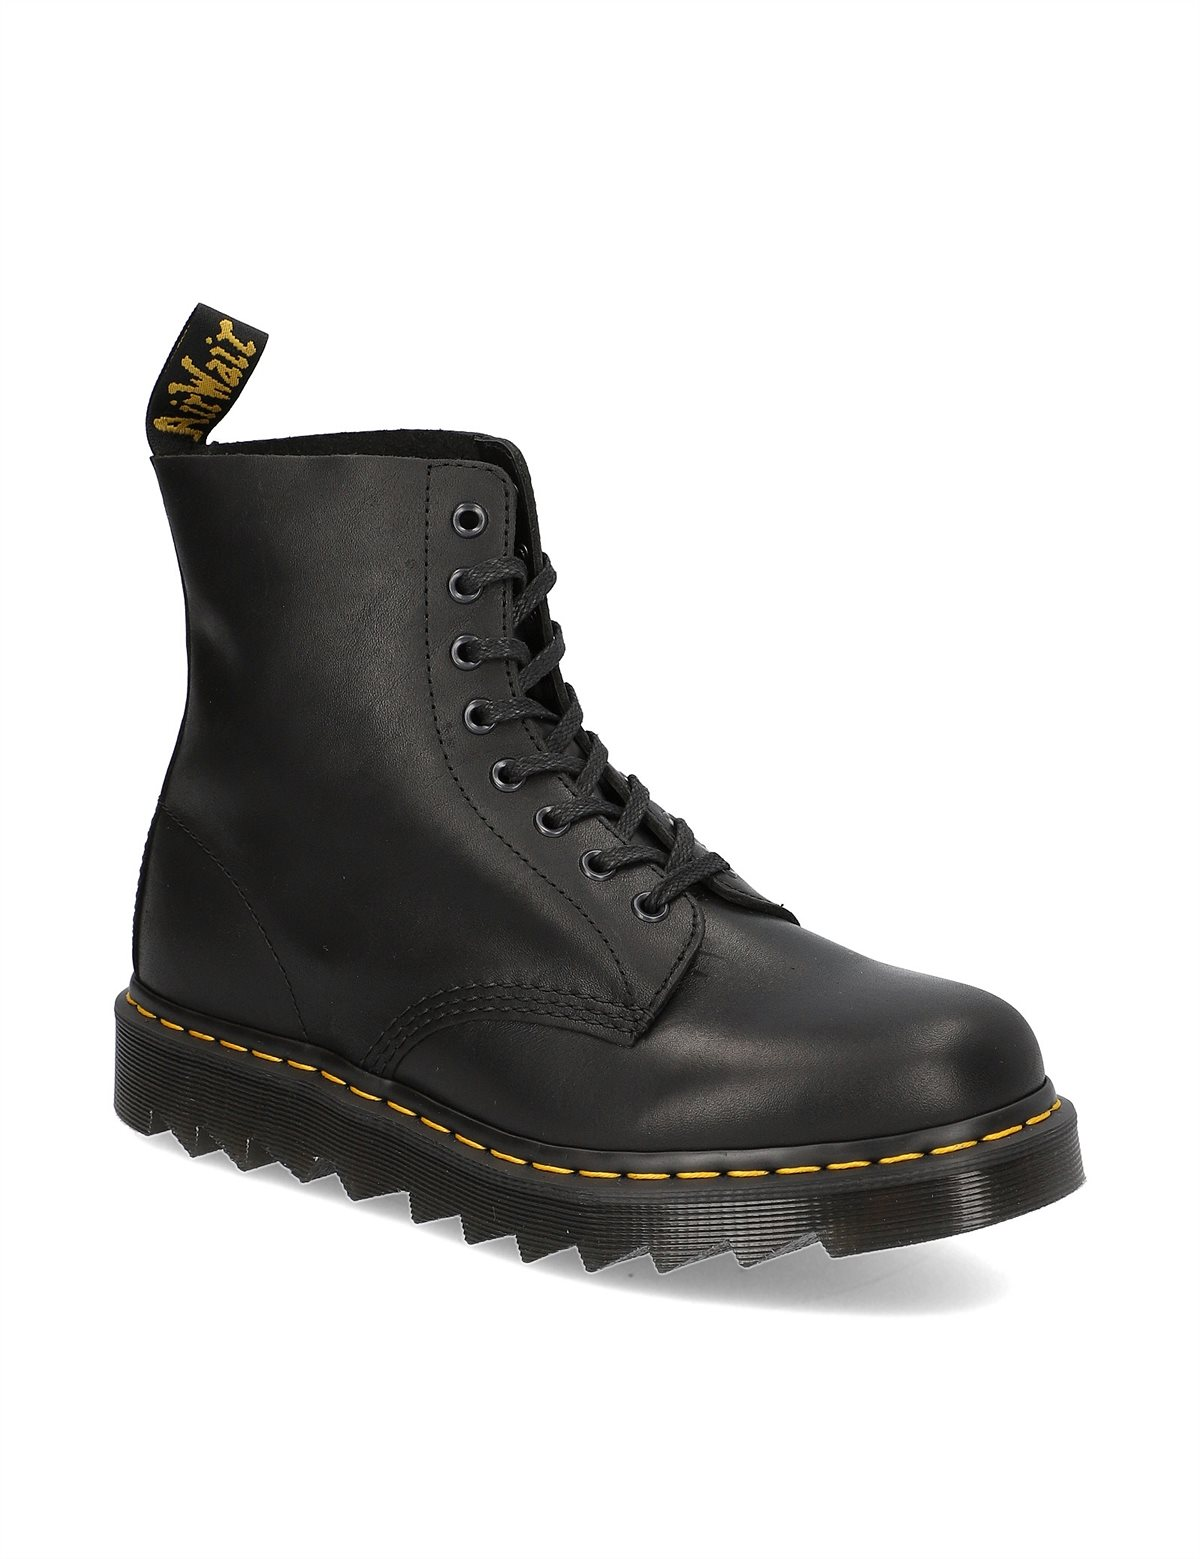 HUMANIC 37 Dr. Martens mit Zackensohle EUR 190 2623510330